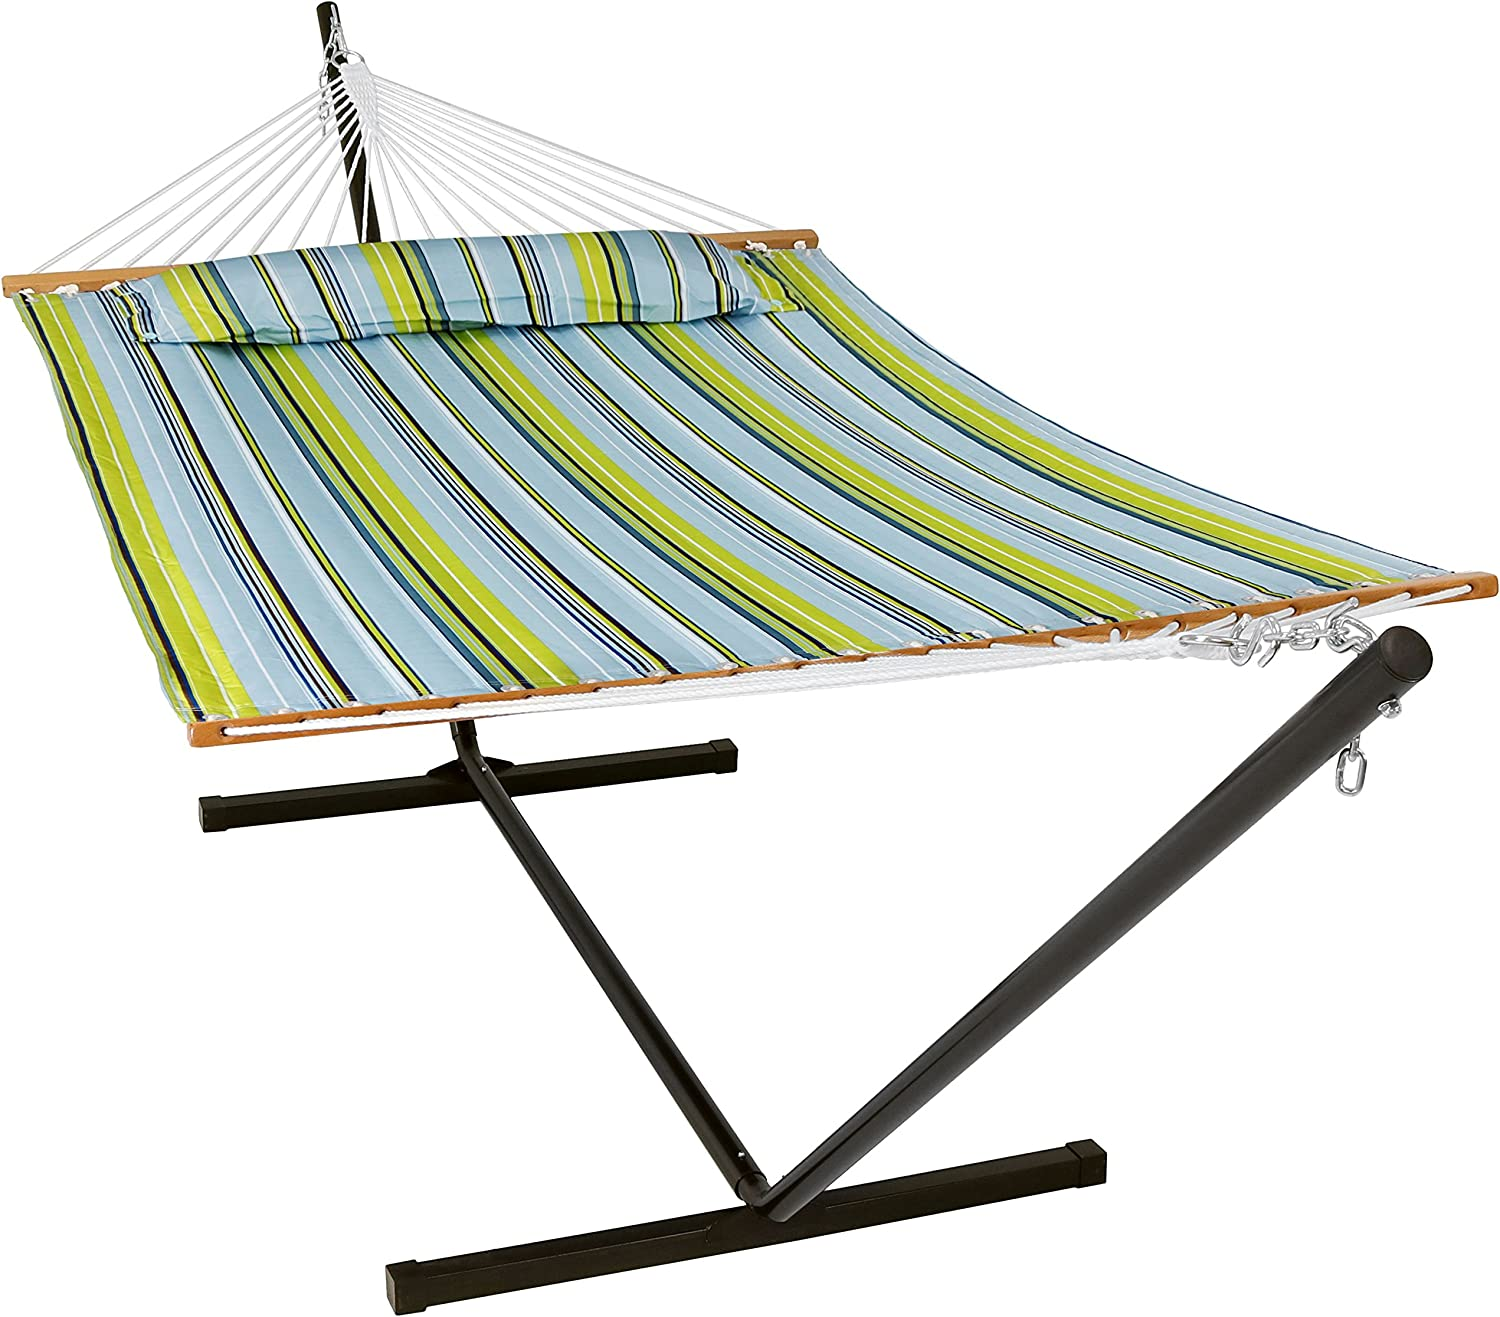 Sunnydaze 12 ft Steel Stand with Blue and Green Double Spreader Bar Hammock Combo Set